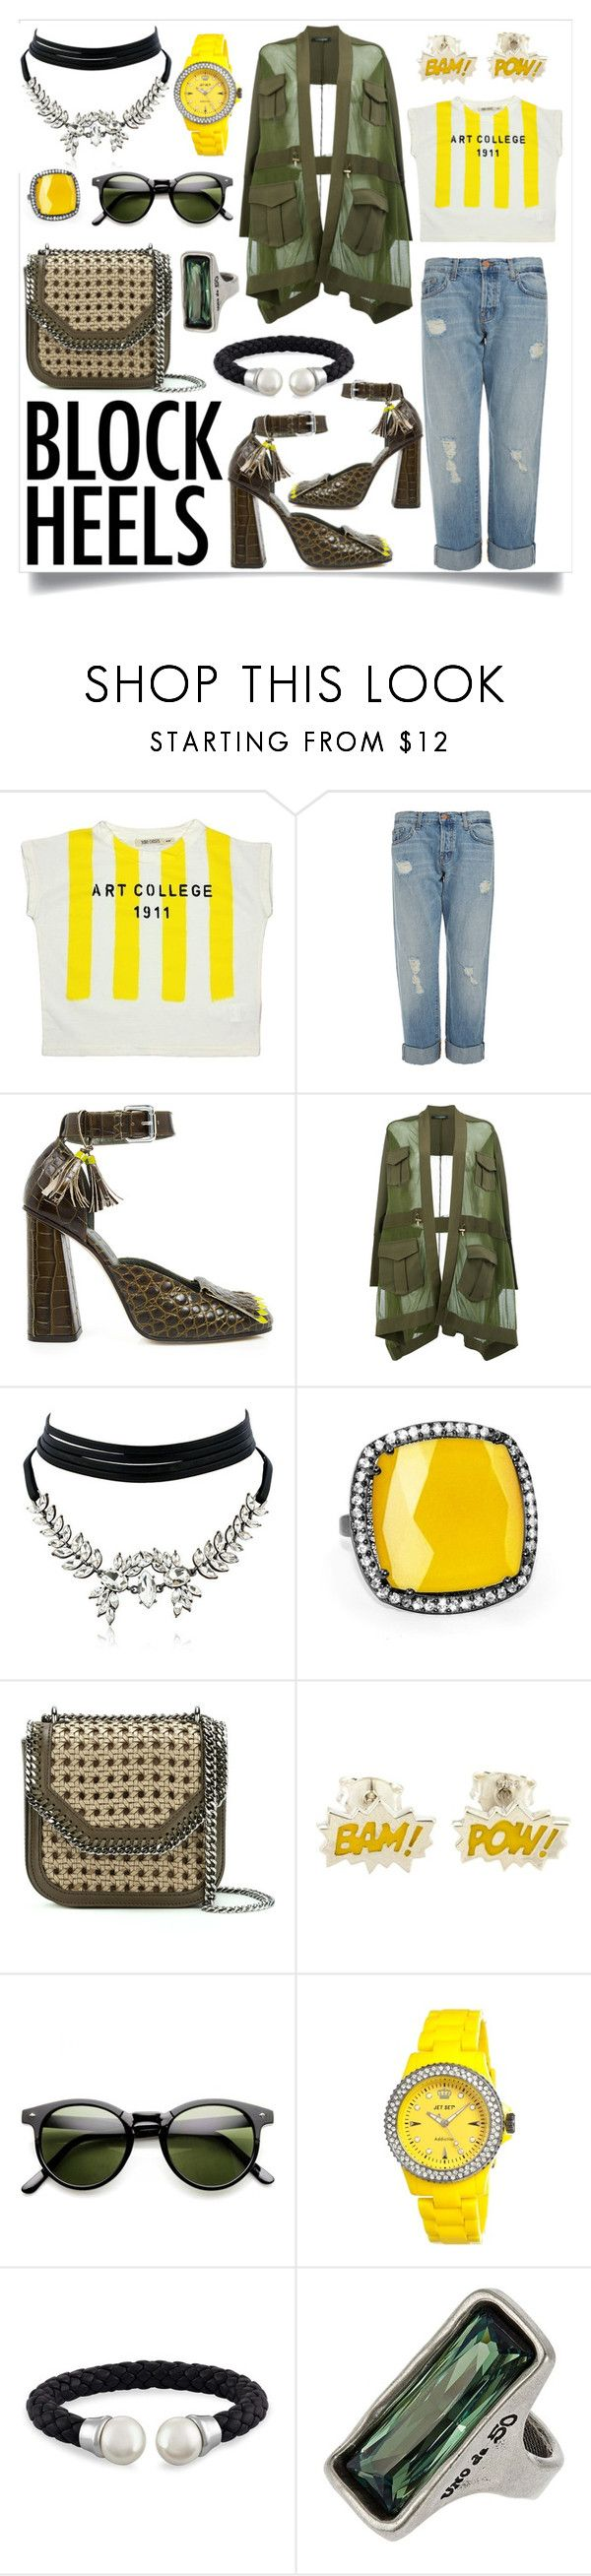 """Sun Powered"" by amyopt ❤ liked on Polyvore featuring Bobo Choses, J Brand, SUNO New York, Balmain, WithChic, Susan Hanover, STELLA McCARTNEY, Jet Set, Majorica and Uno de 50"